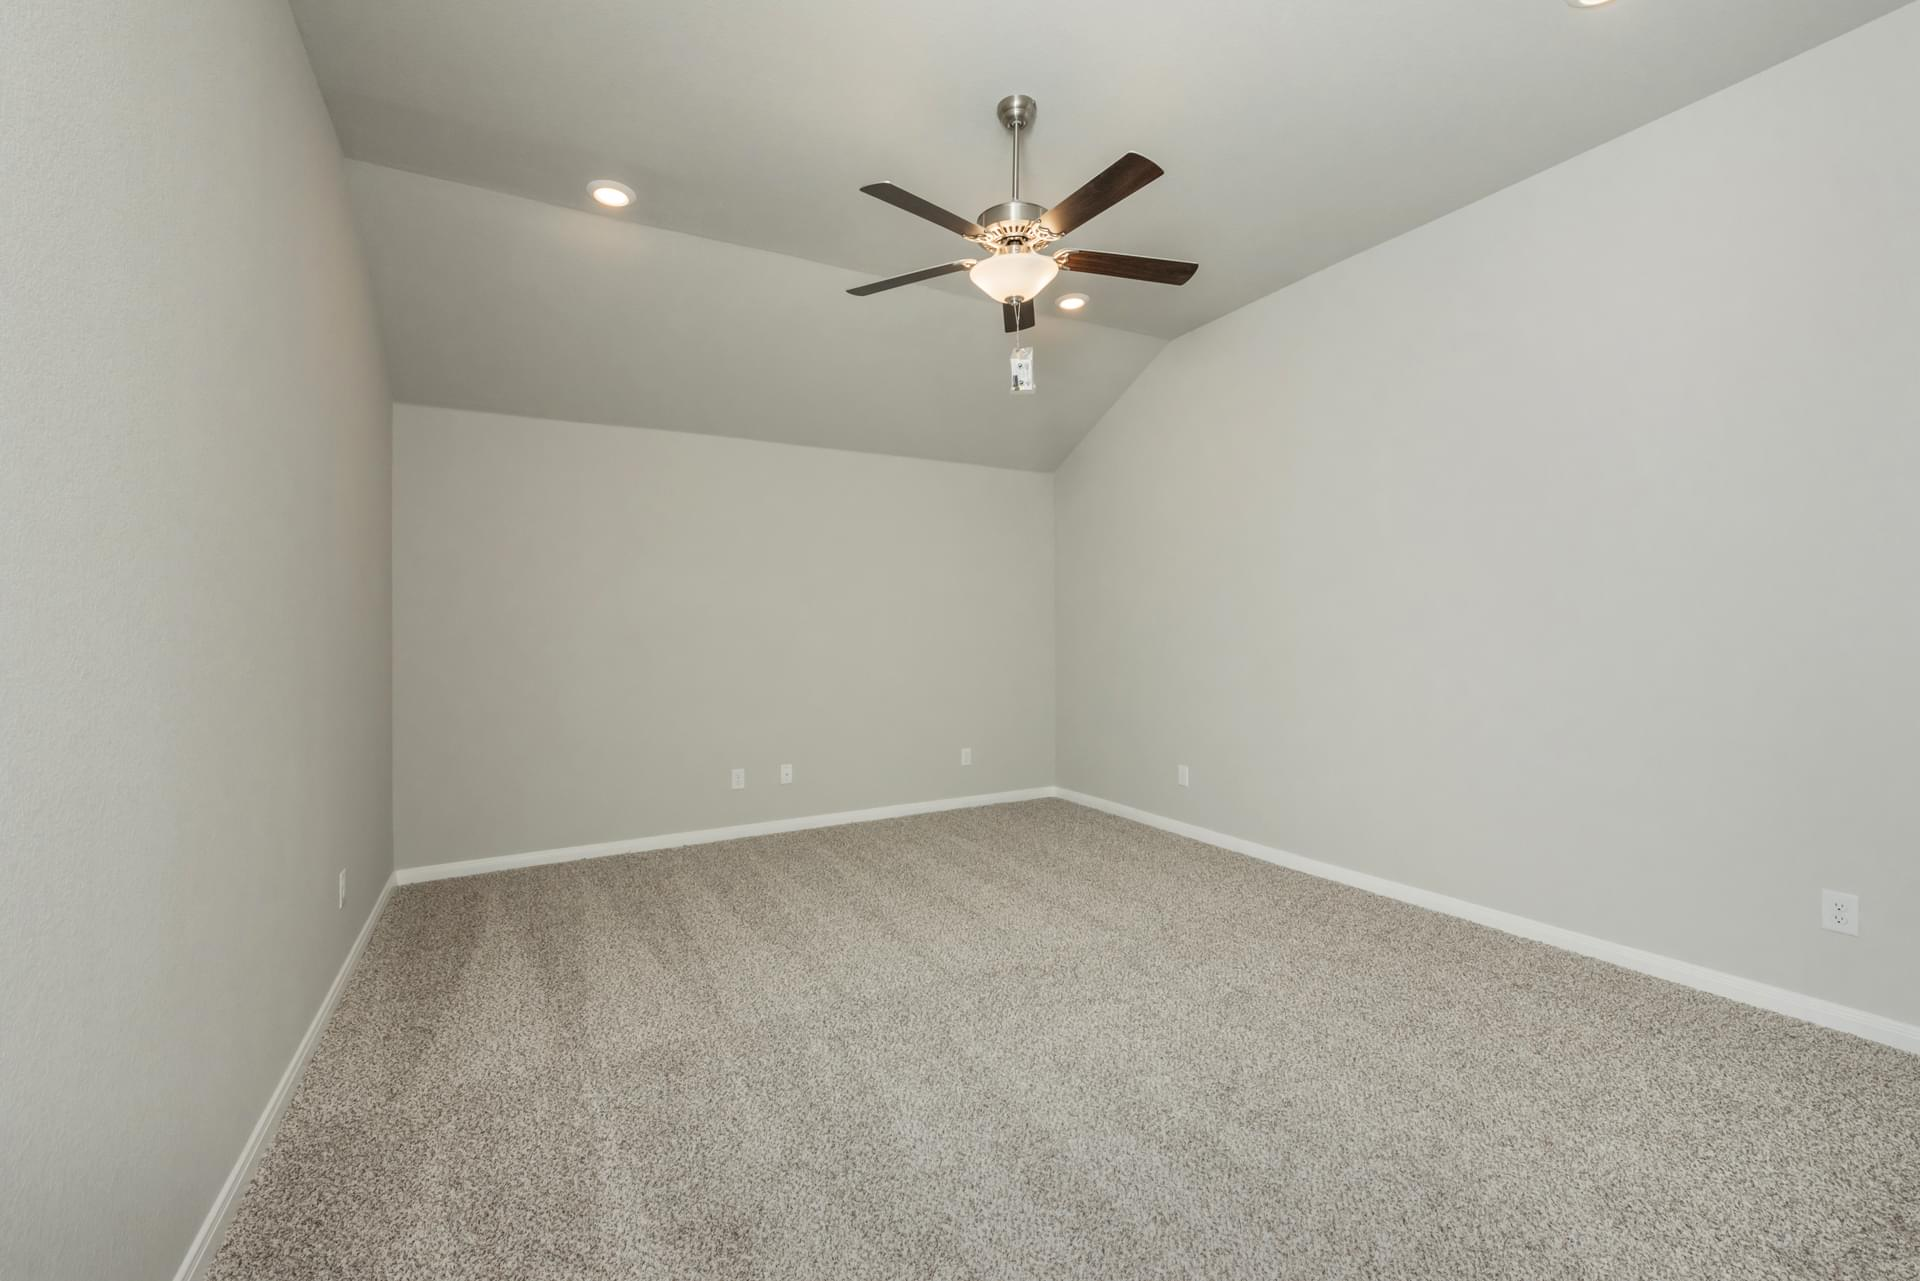 S-2516 New Home in Willis, TX